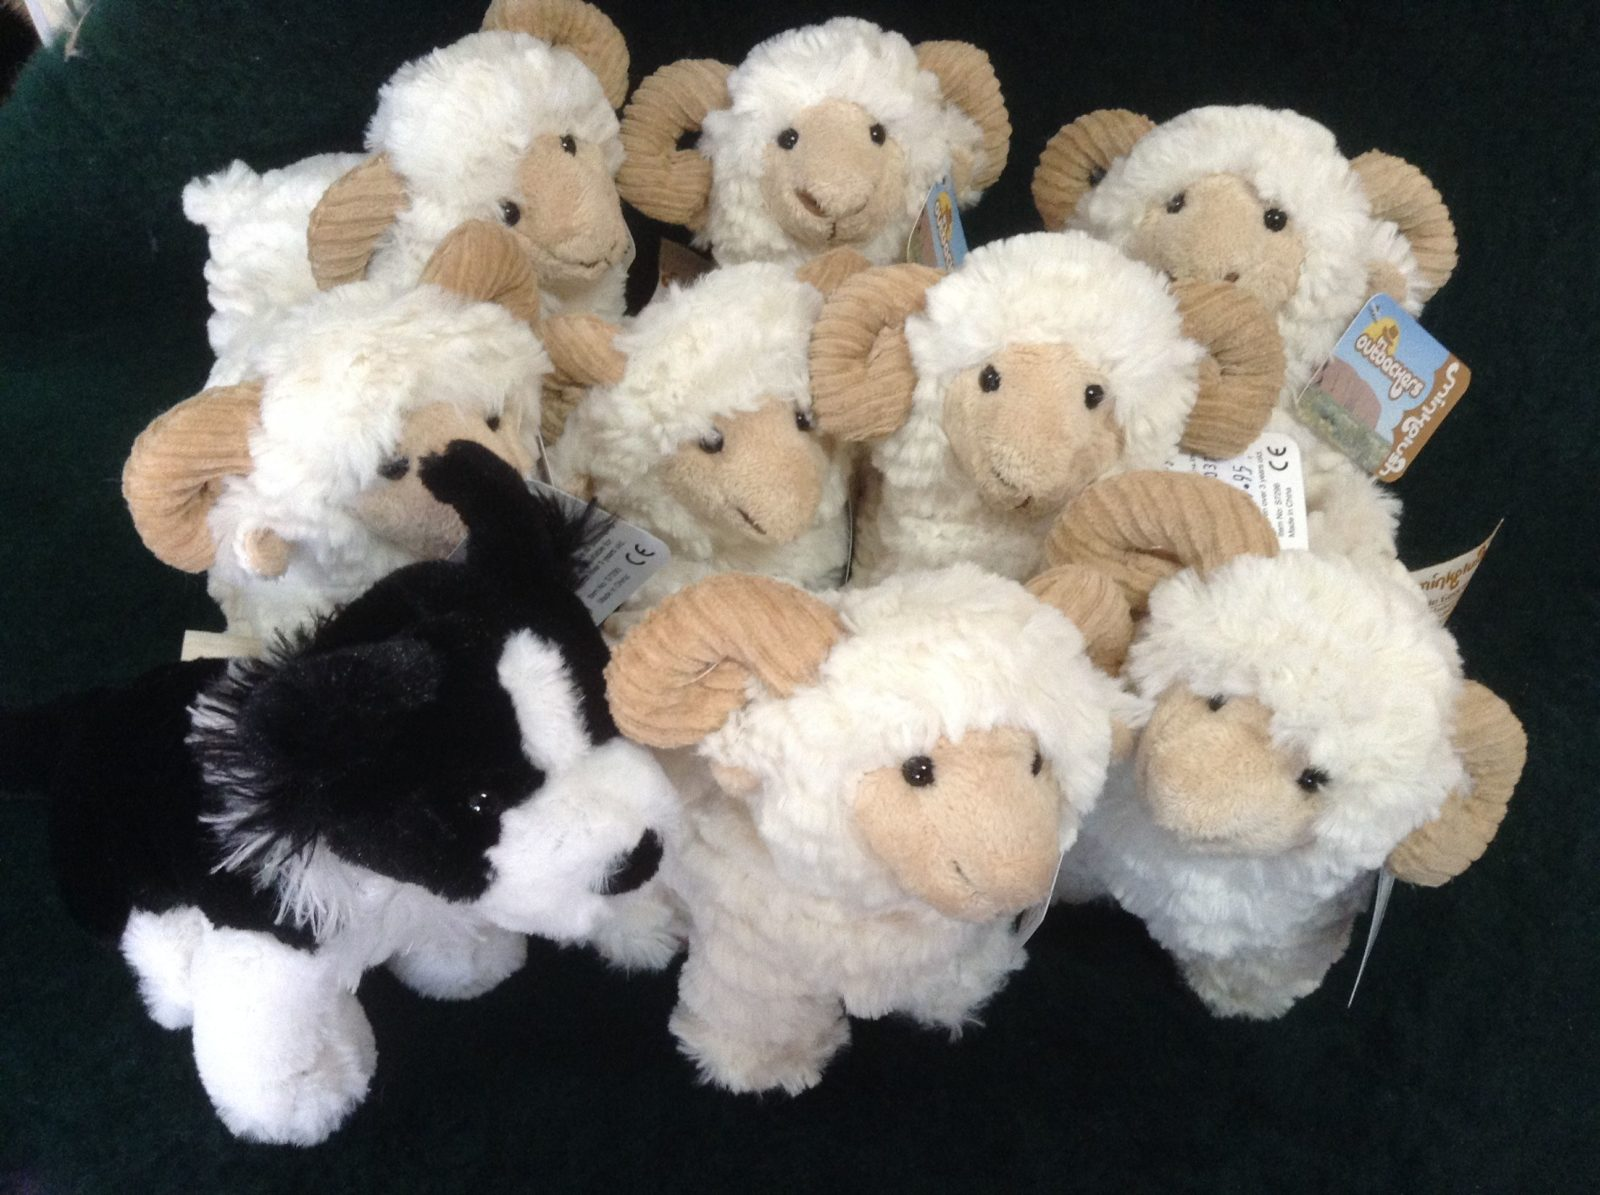 Outbackers plush toys